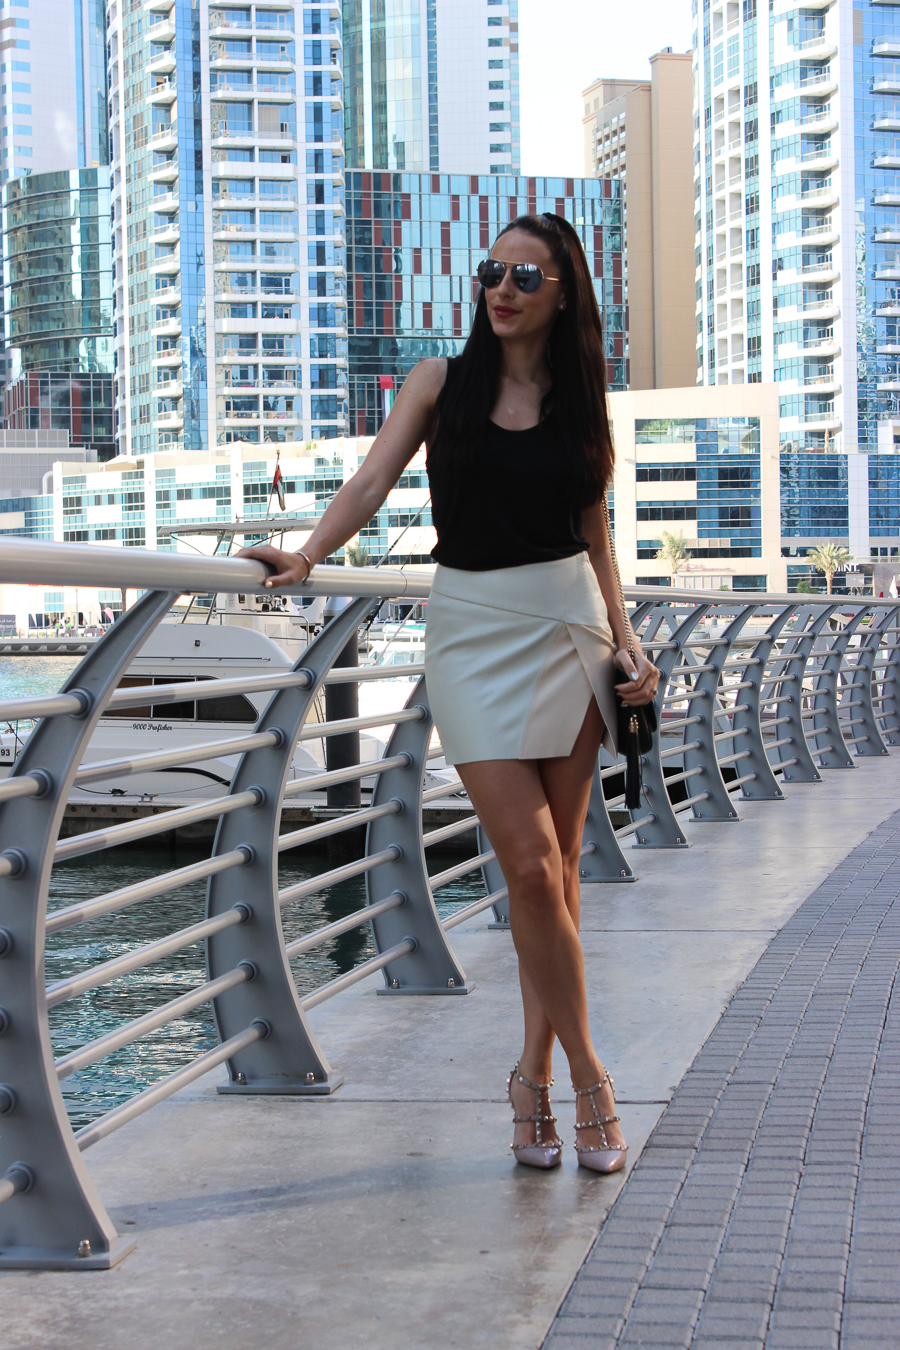 clutch and carry on - uk travel blogger - dubai travel blog - sabrina chakici -_-93